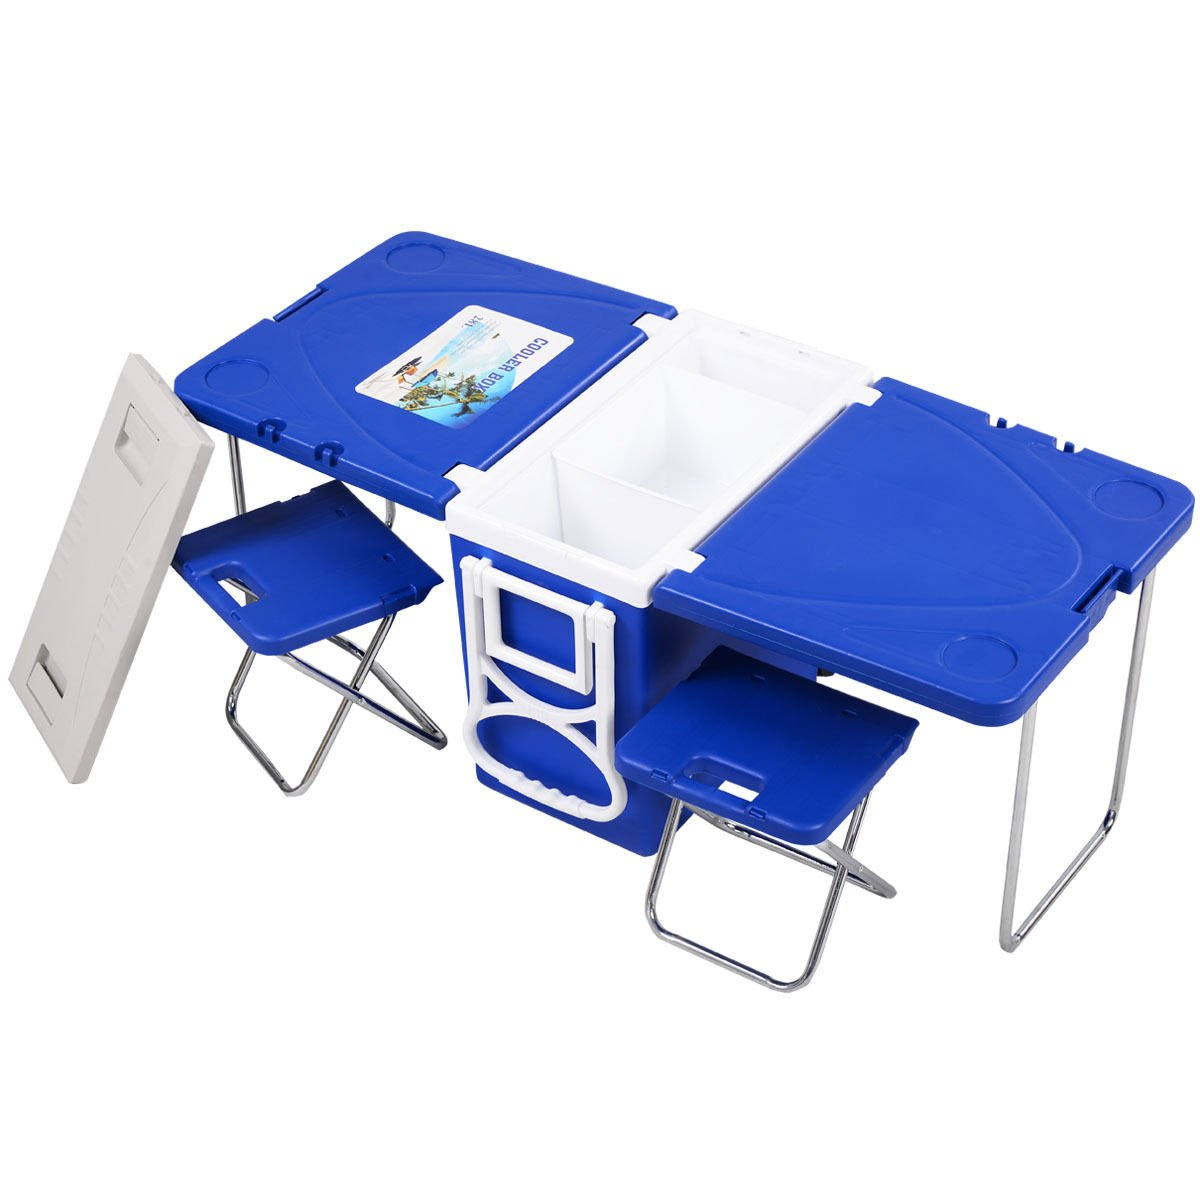 Outdoor picnic camping blue multi function rolling cooler with table & 2 chairs folds out easily and packs up within minutes